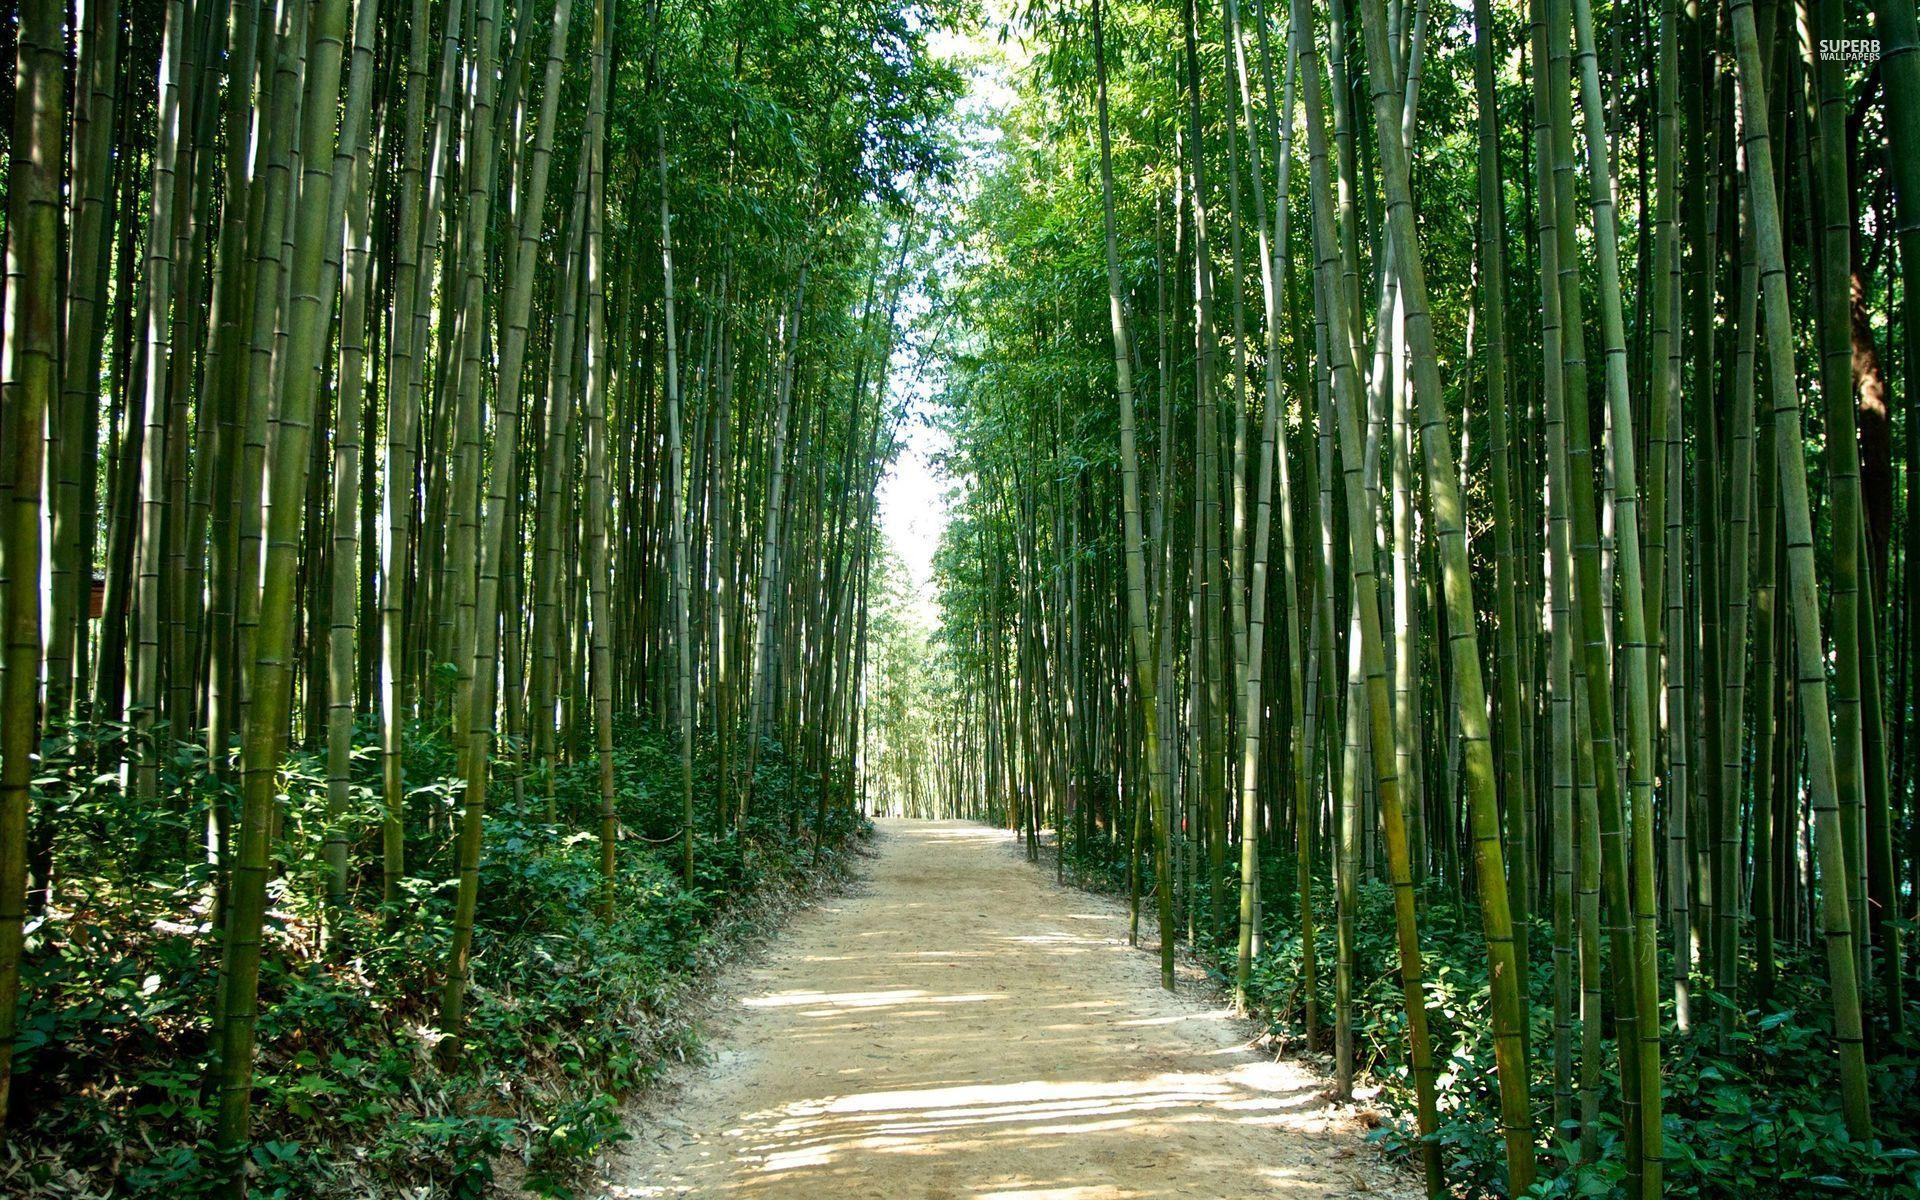 Japan Bamboo forest Wallpapers Elegant Sagano Bamboo forest Japan